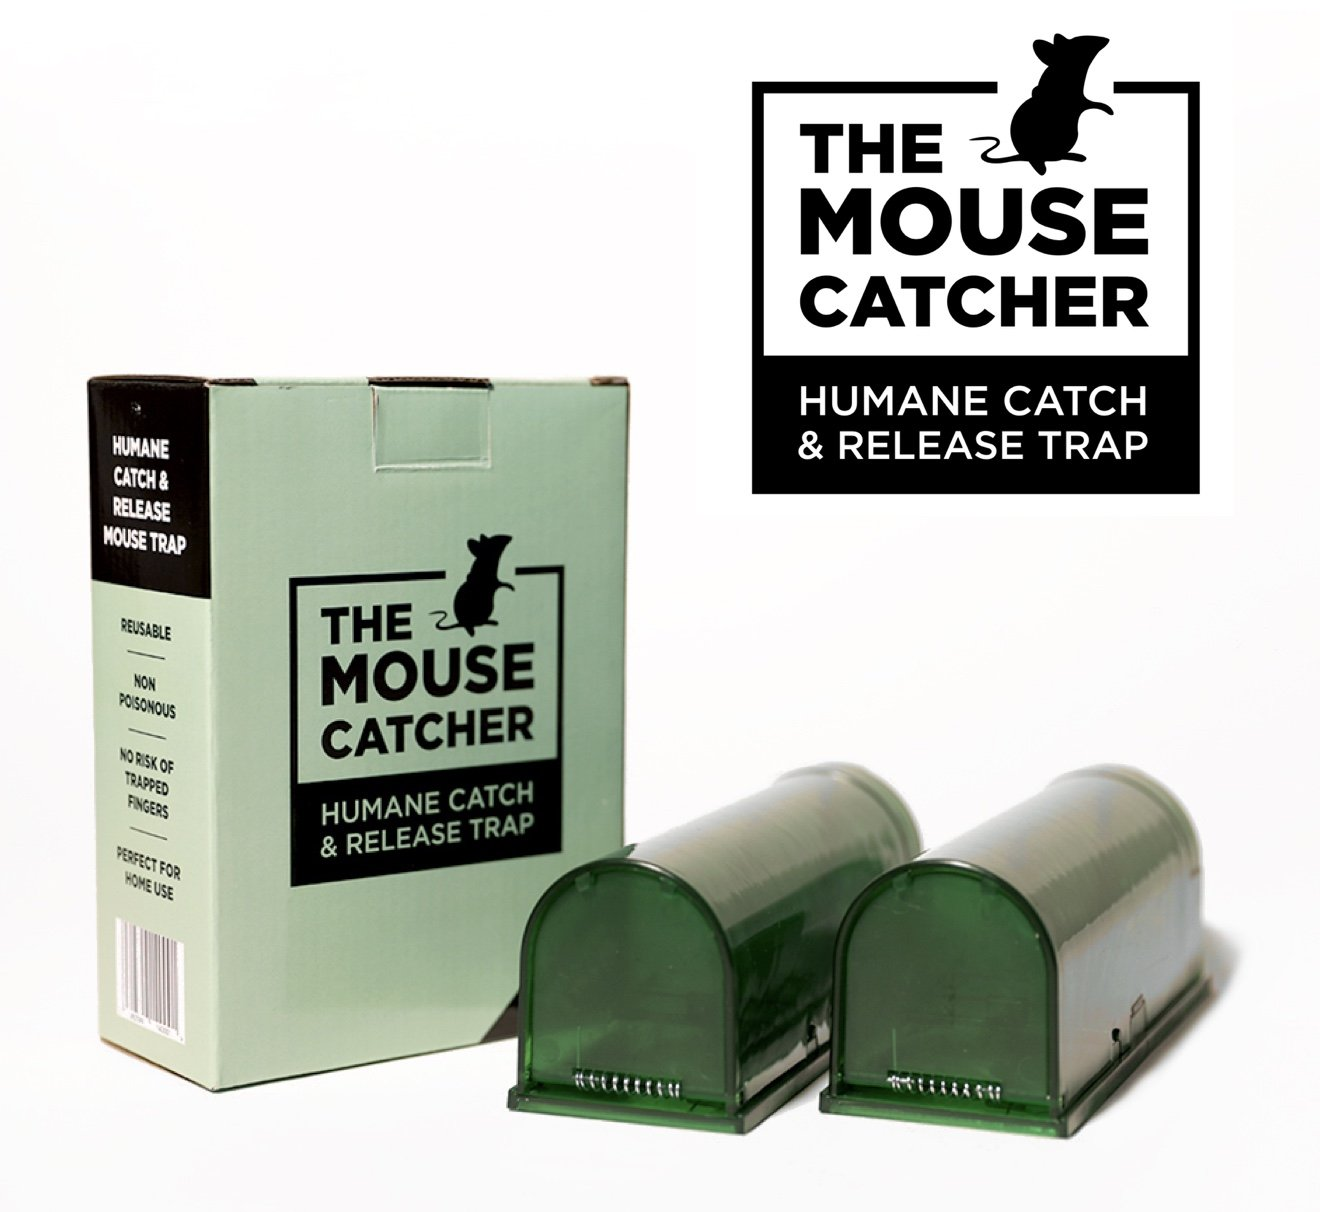 The Mouse Catcher, 2 x Humane Mouse Trap, Rodent Cage, Indoor and Outdoor Use, Child and Pet Friendly, Organic Green Colour, Reusable and Easy to Clean (2 pack)